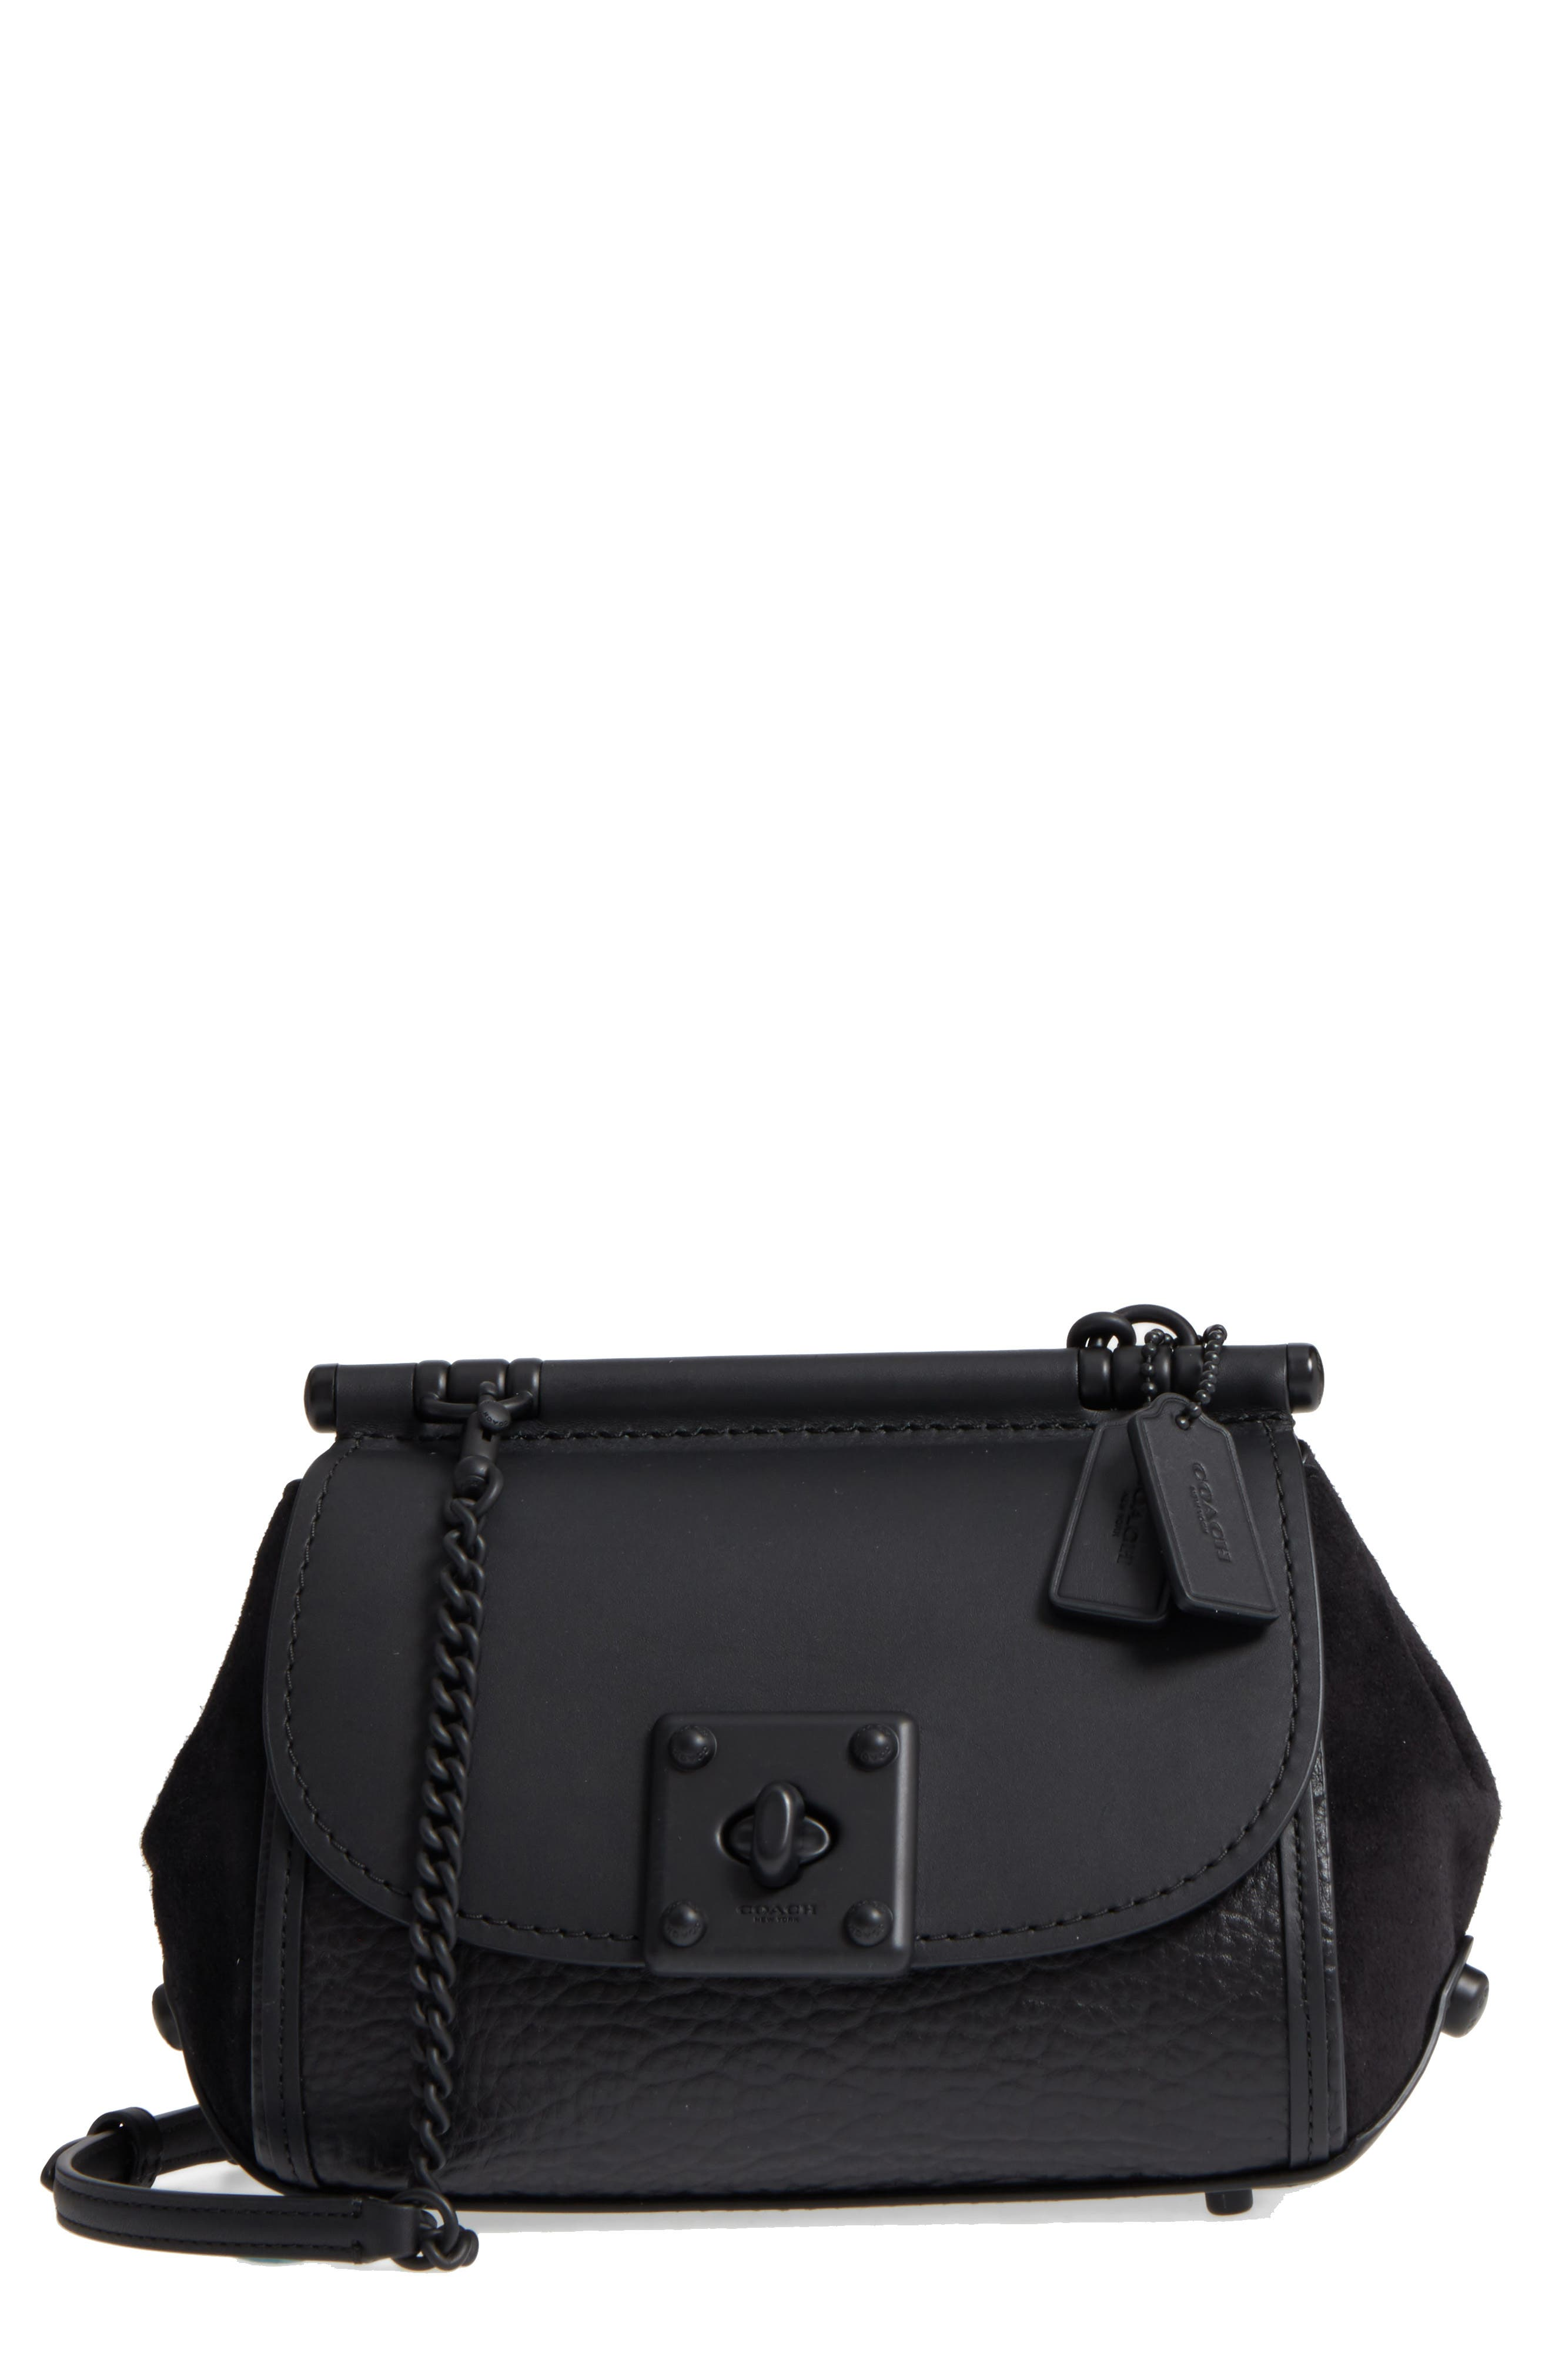 Alternate Image 1 Selected - COACH Mixed Leather Crossbody Bag